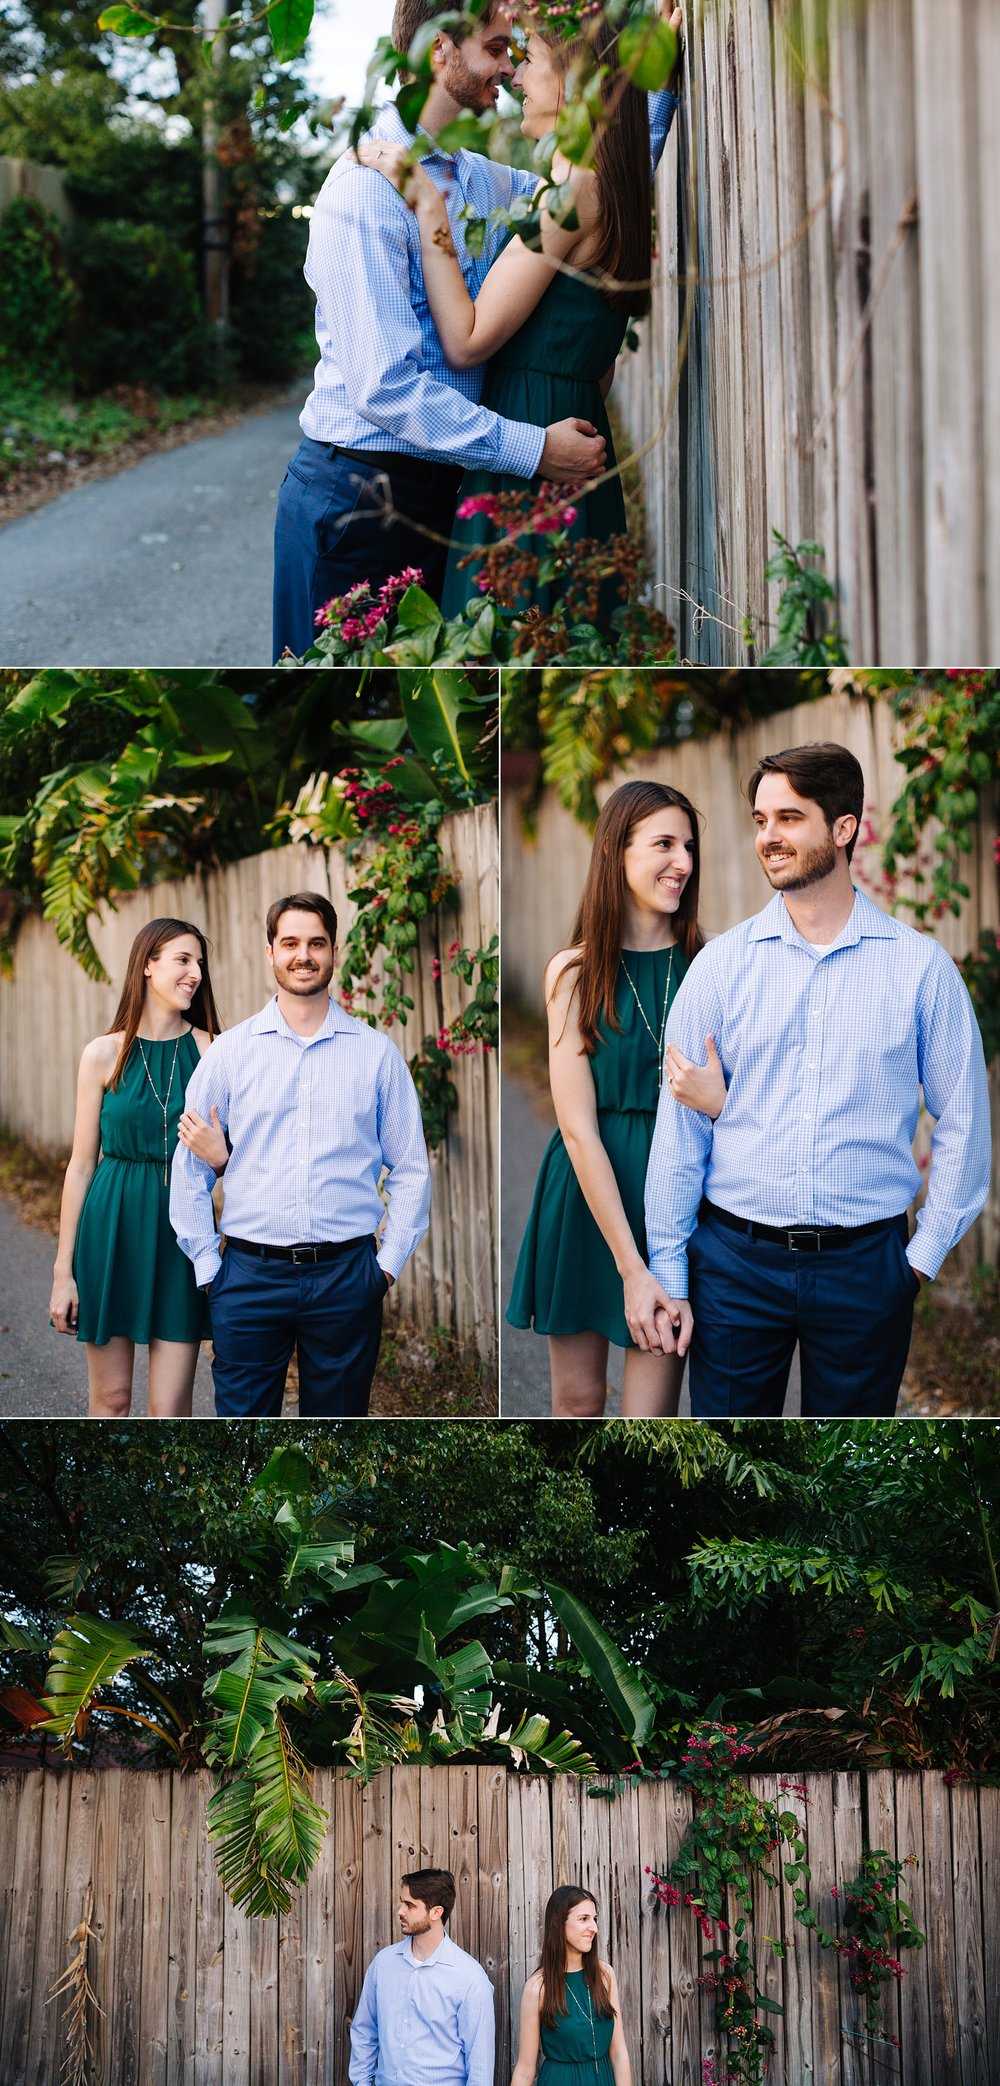 Jake & Katie Photography Seminole Heights Engagement Photos David & Cailyn-017.jpg